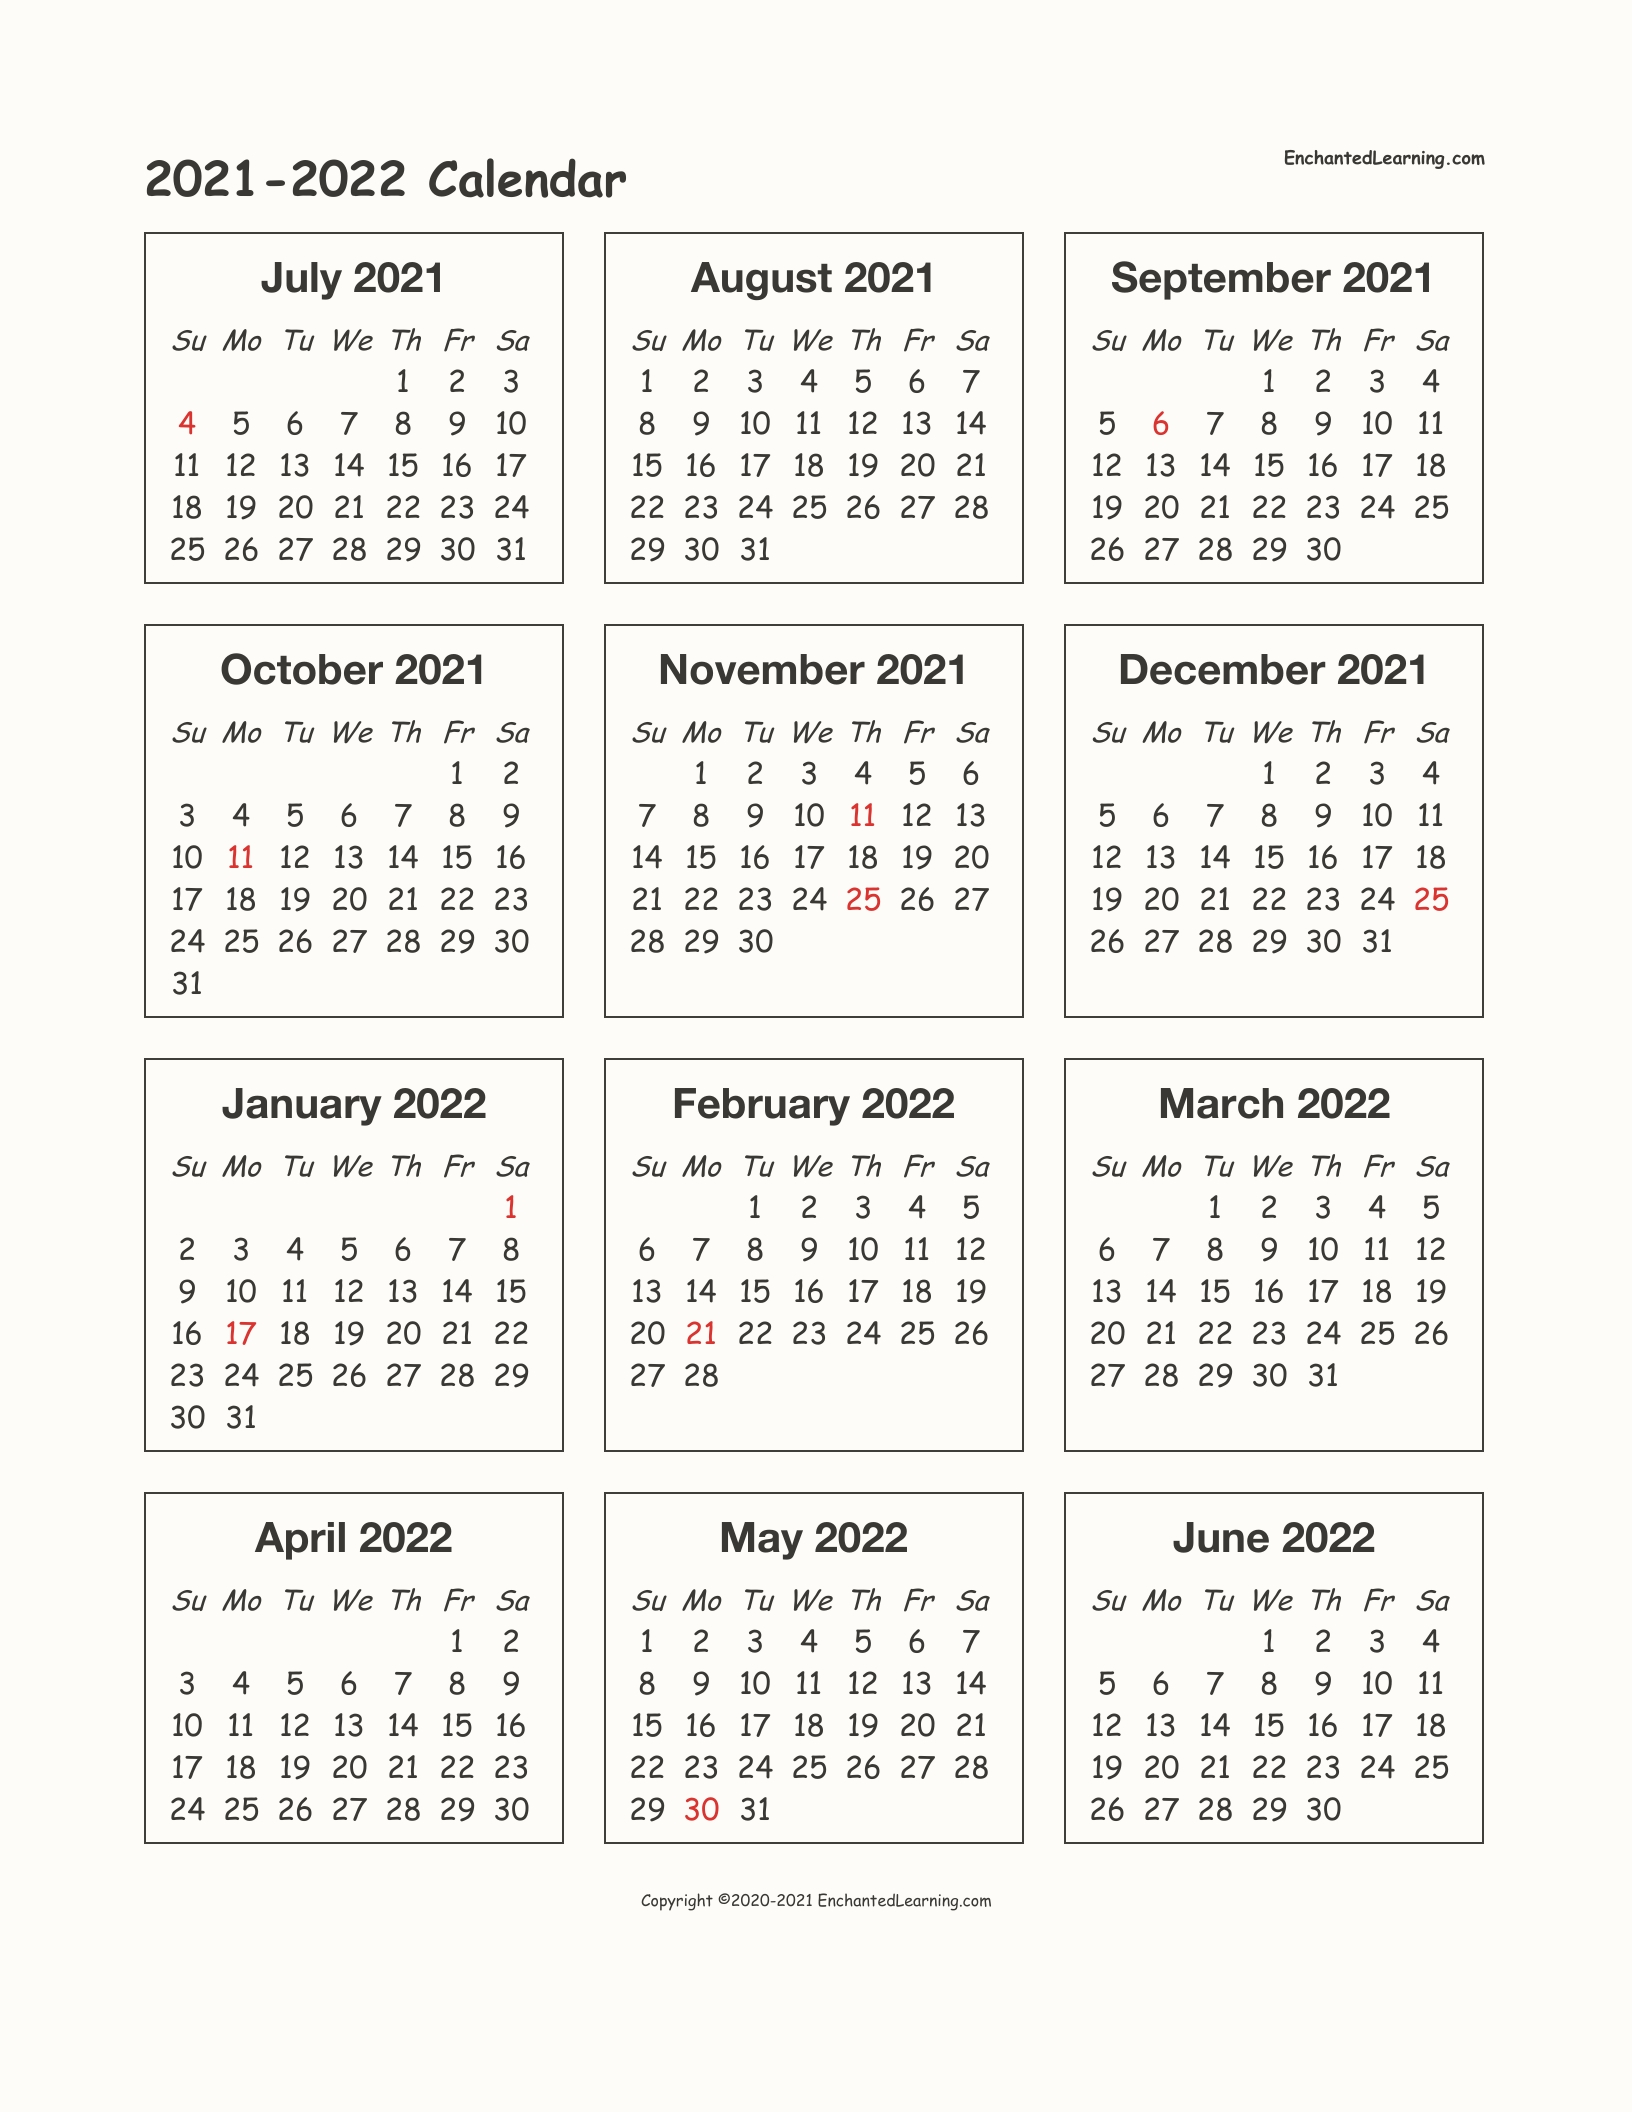 2021-2022 School-Year One-Page Calendar - Enchanted Learning within 3 Year Printable Calendar 2021 2021 2022 Graphics